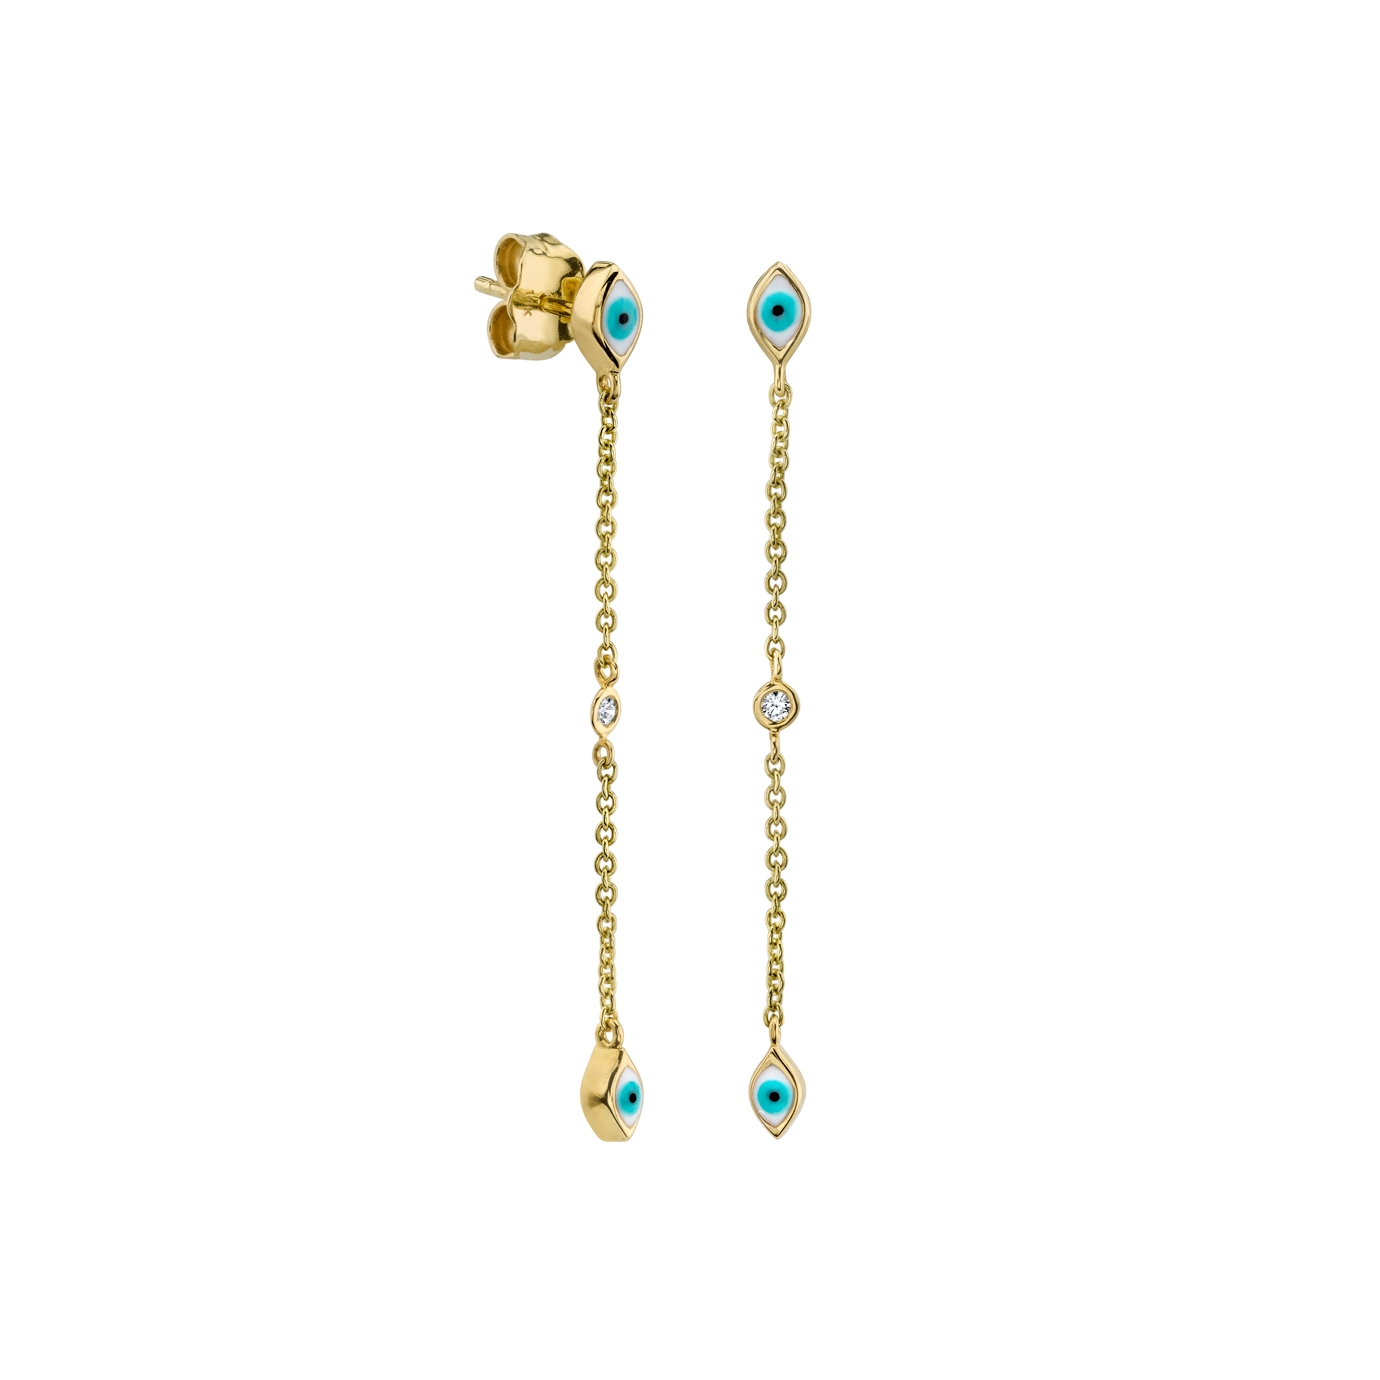 SYDNEY EVAN 14CT YELLOW GOLD MINI ENAMEL EYE CASCADE EARRINGS